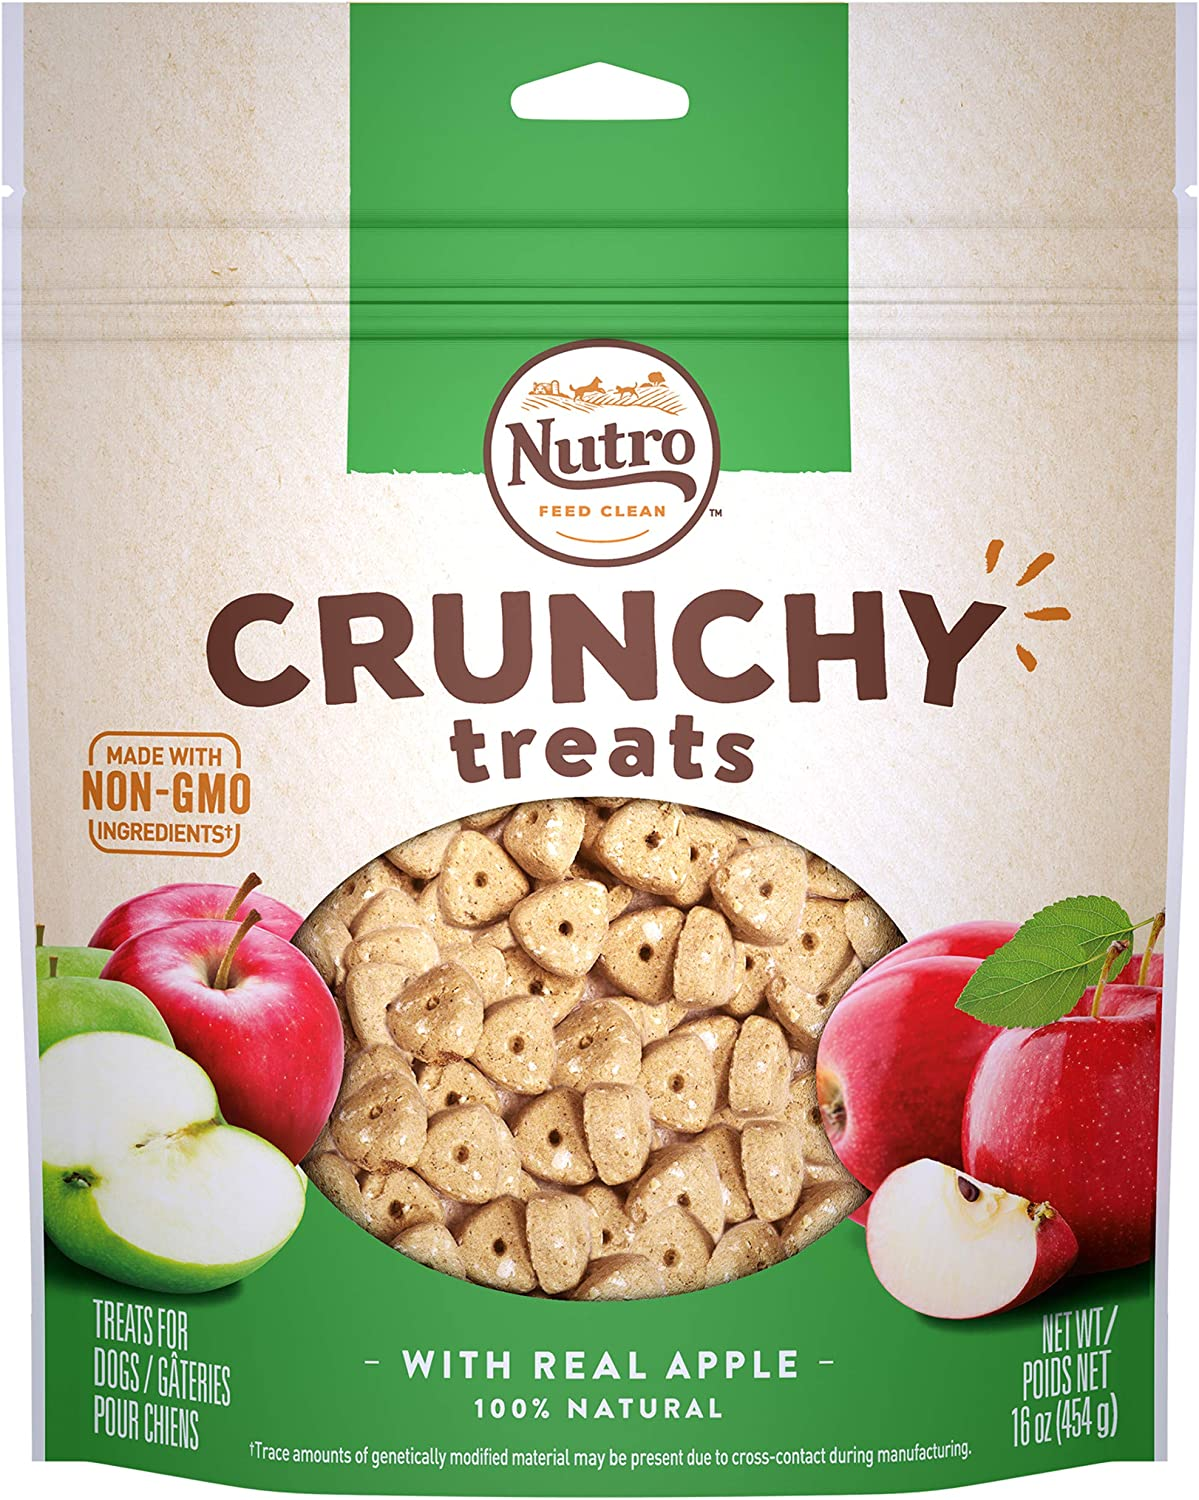 Nutro Crunchy Natural Dog Biscuit Treats Max 82% OFF Very popular